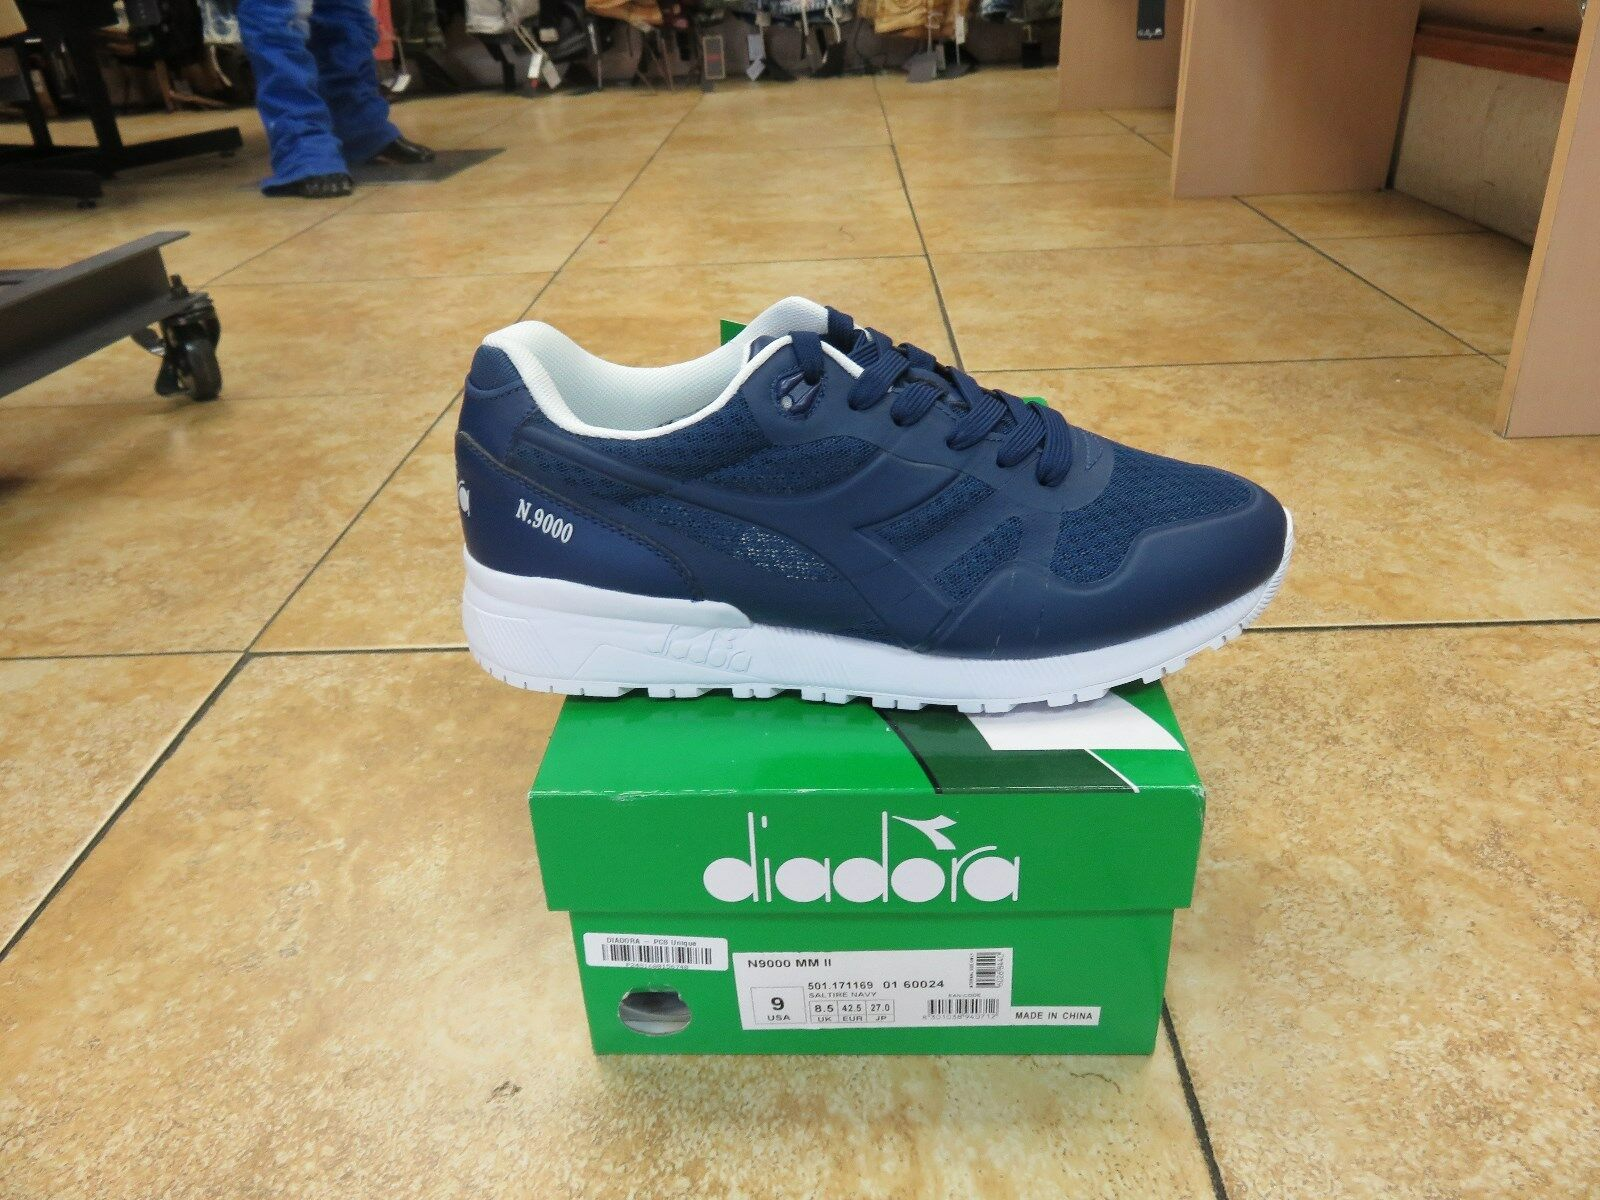 DIADORA N9000 SALTIRE NAVY BLUE MEN SHOES *NEW RELEASES* ALL SIZES